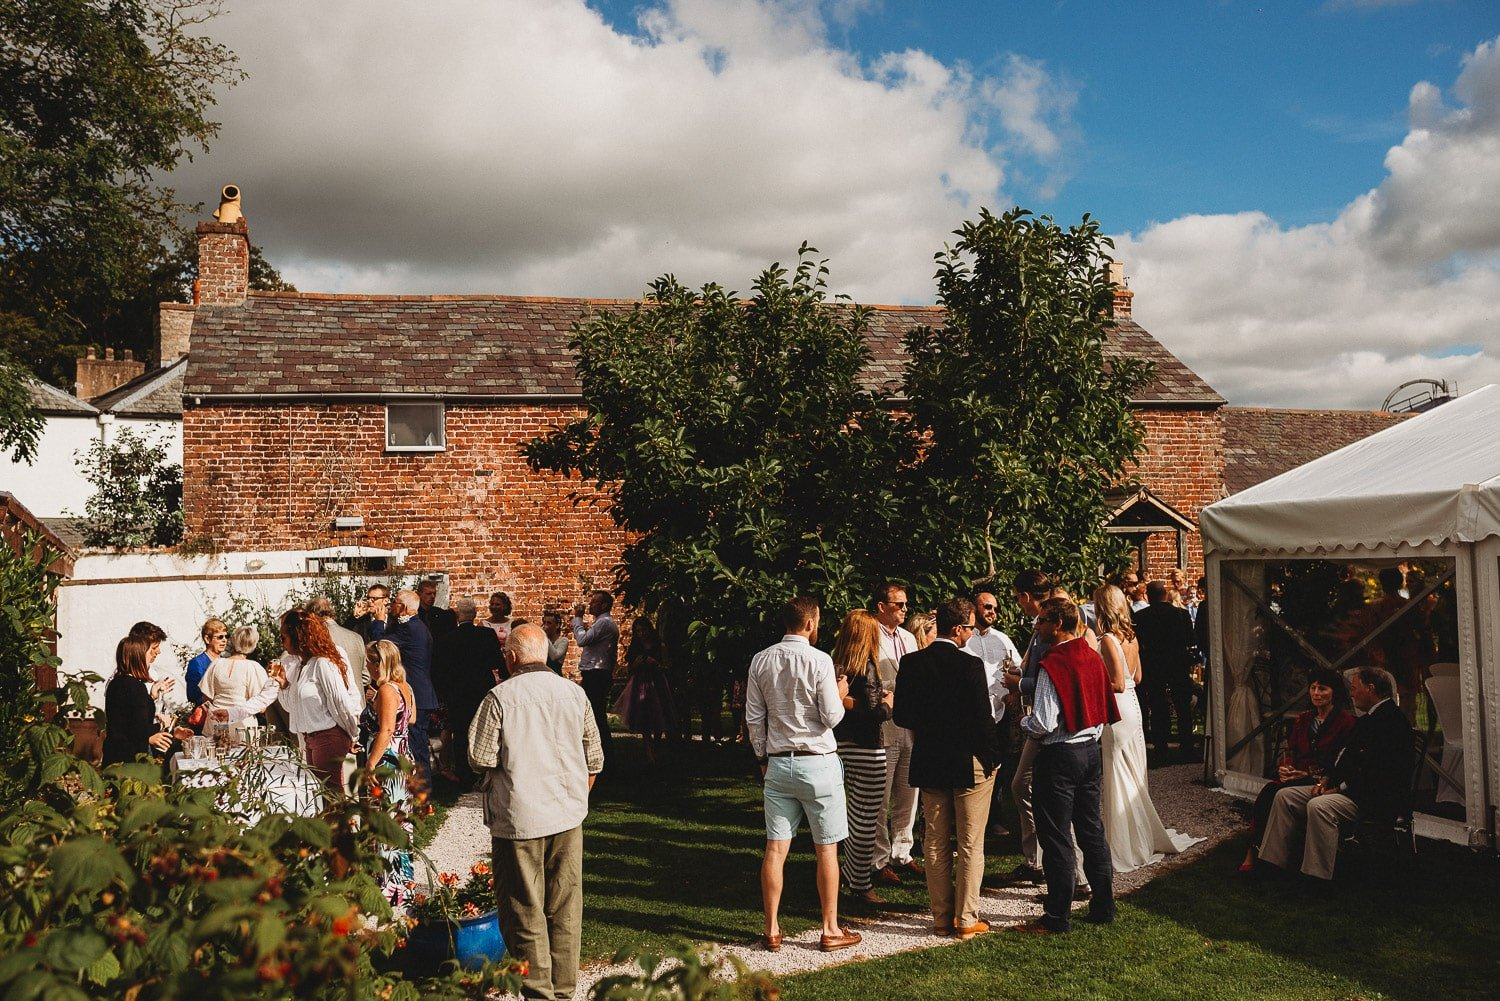 Guests mingling in the secret garden at a weddingat Pentre Mawr Country House